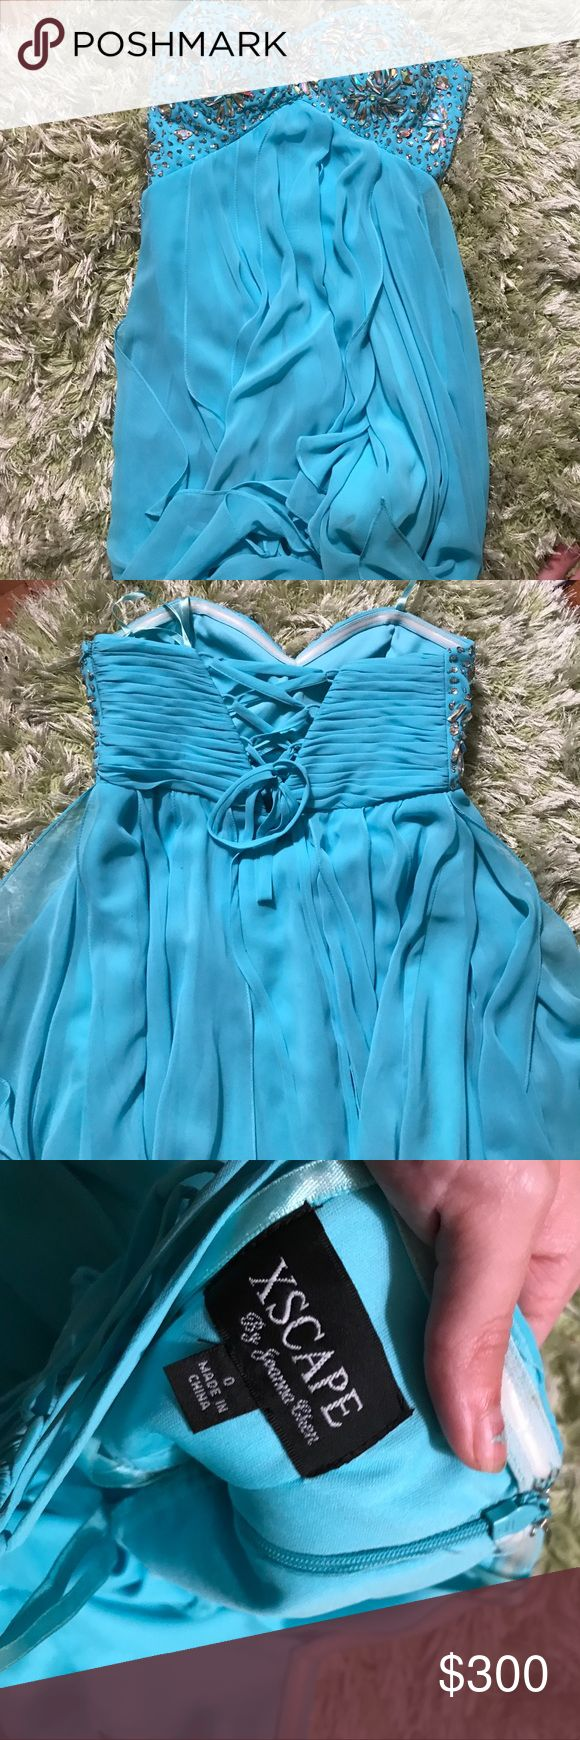 Formal dress Bought for prom but never wore it! Good for weddings or other special events. Mullet dress with empire waist. Size 0 and originally $400. New without tag Xscape Dresses High Low